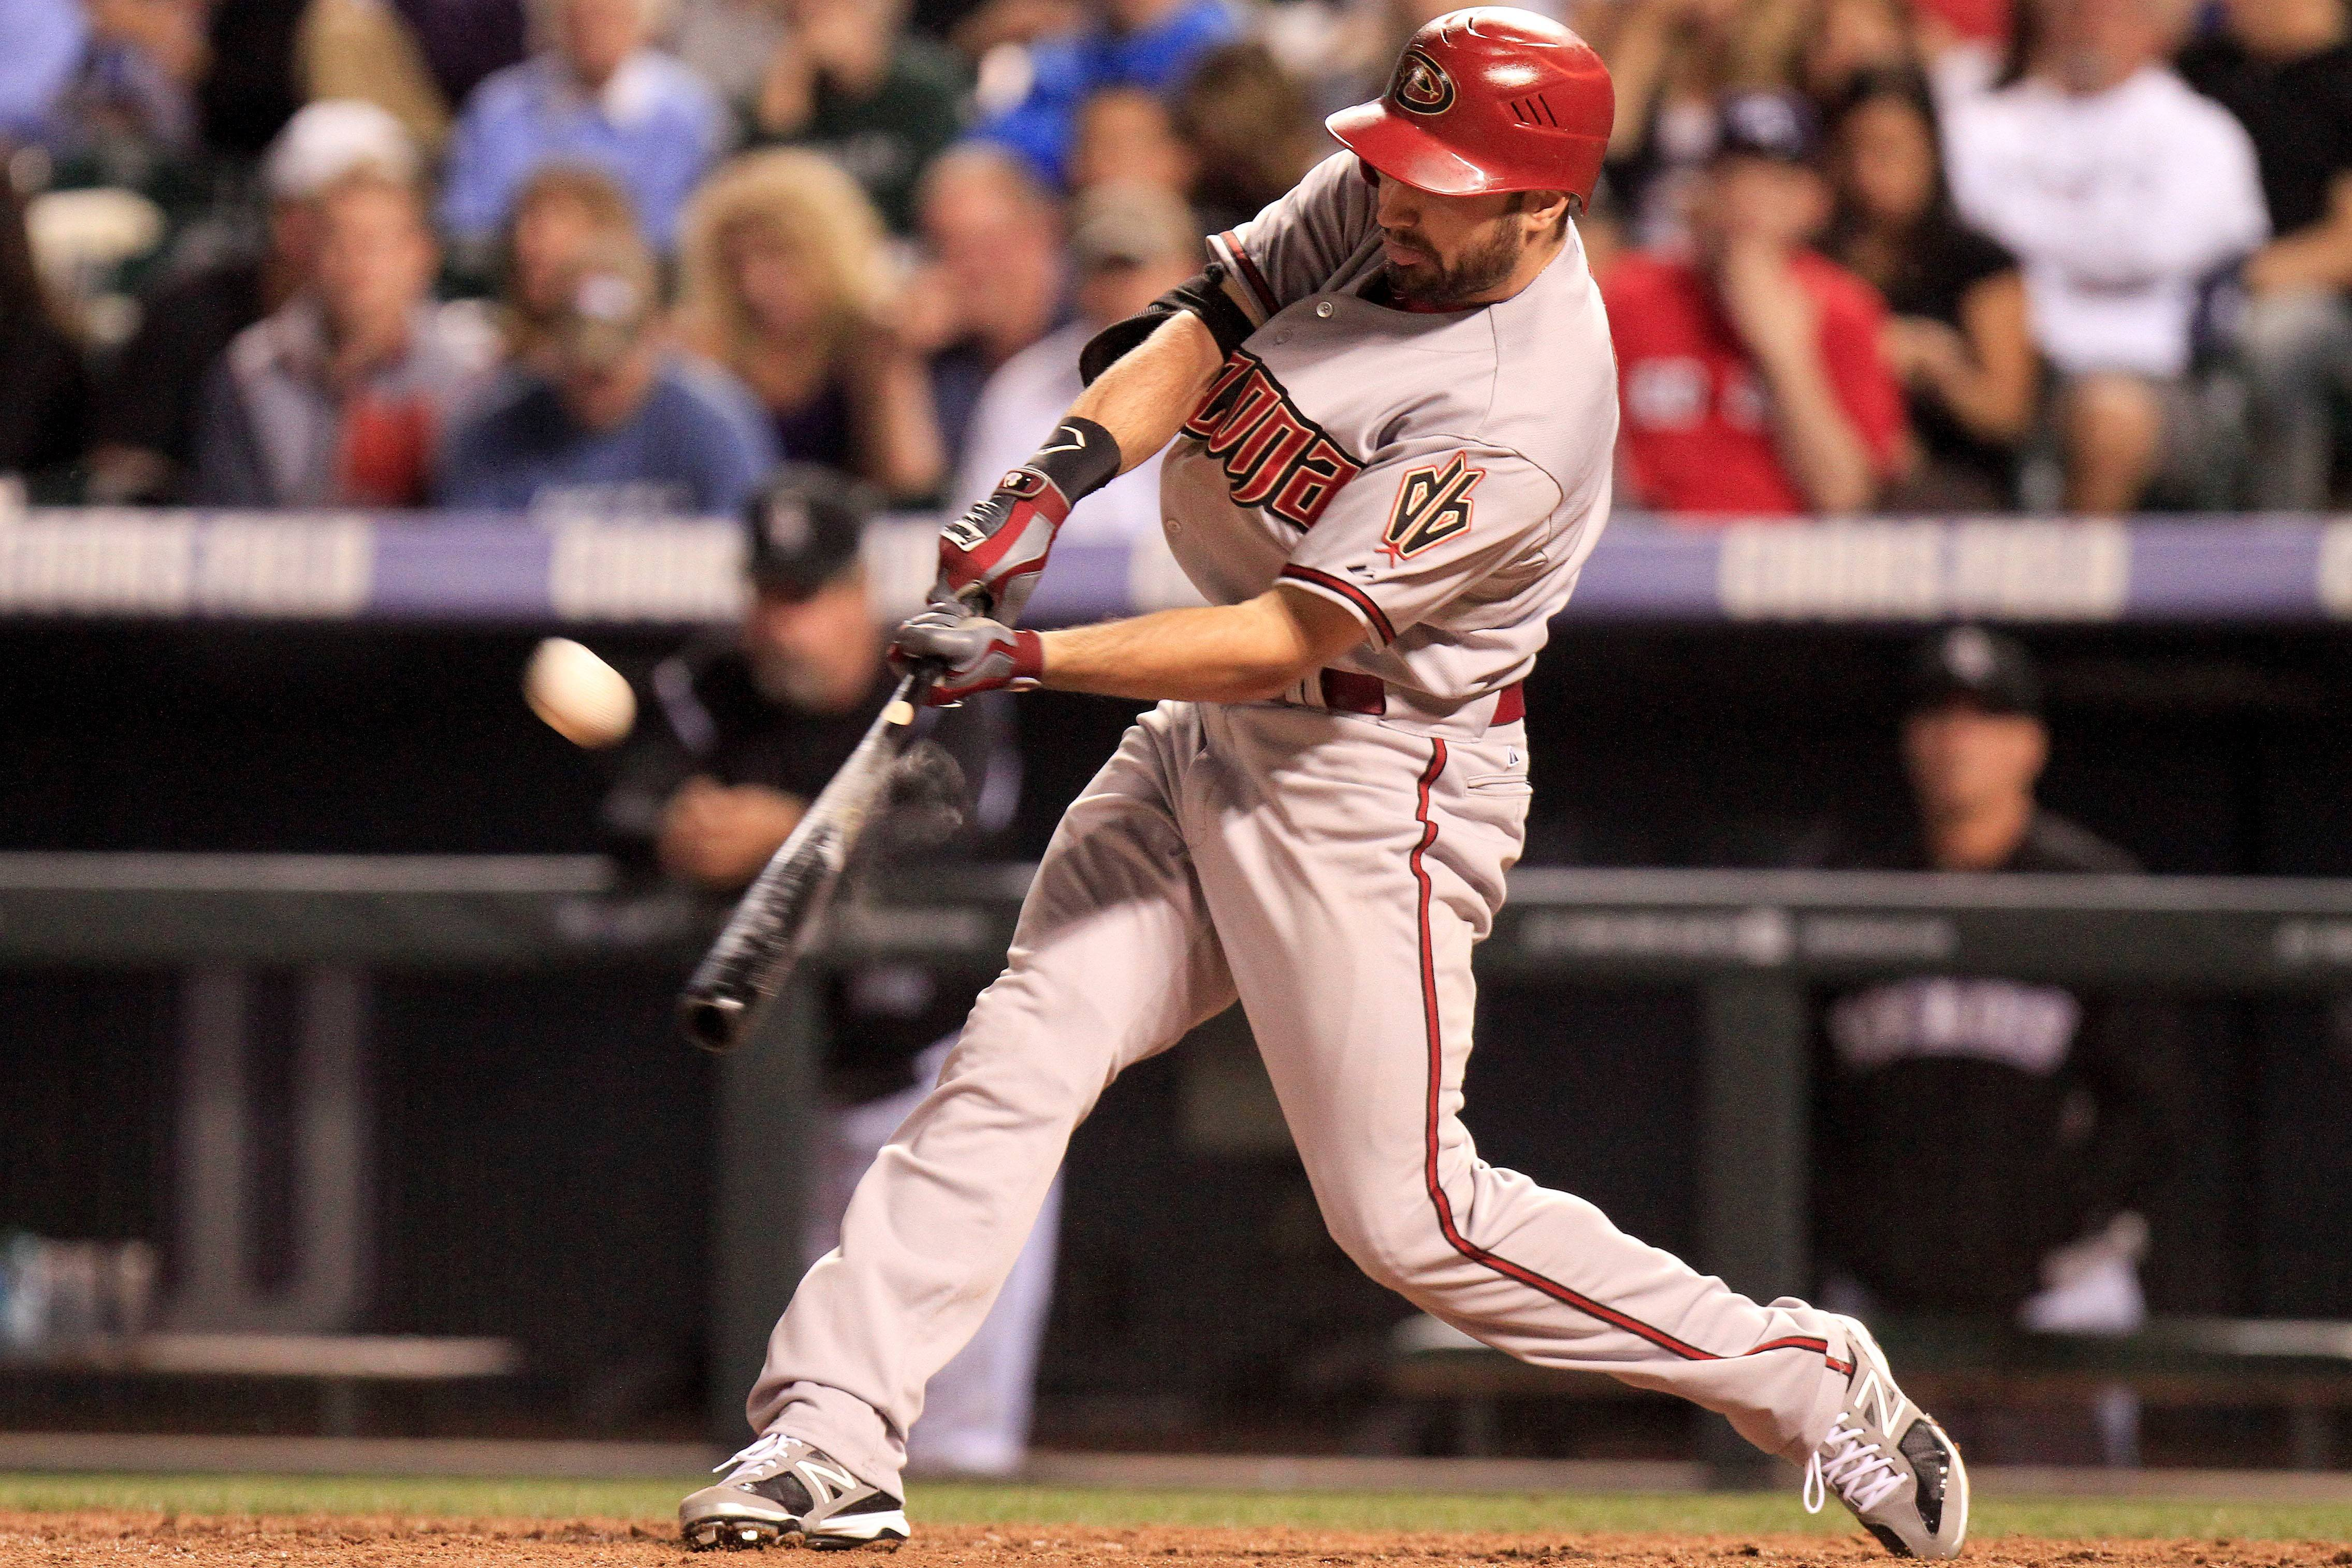 Arizona Diamondbacks' Adam Eaton hits a home run during the sixth inning of a baseball game against the Colorado Rockies Friday, Sept. 21, 2012 in Denver. The Diamondbacks won 15-5.